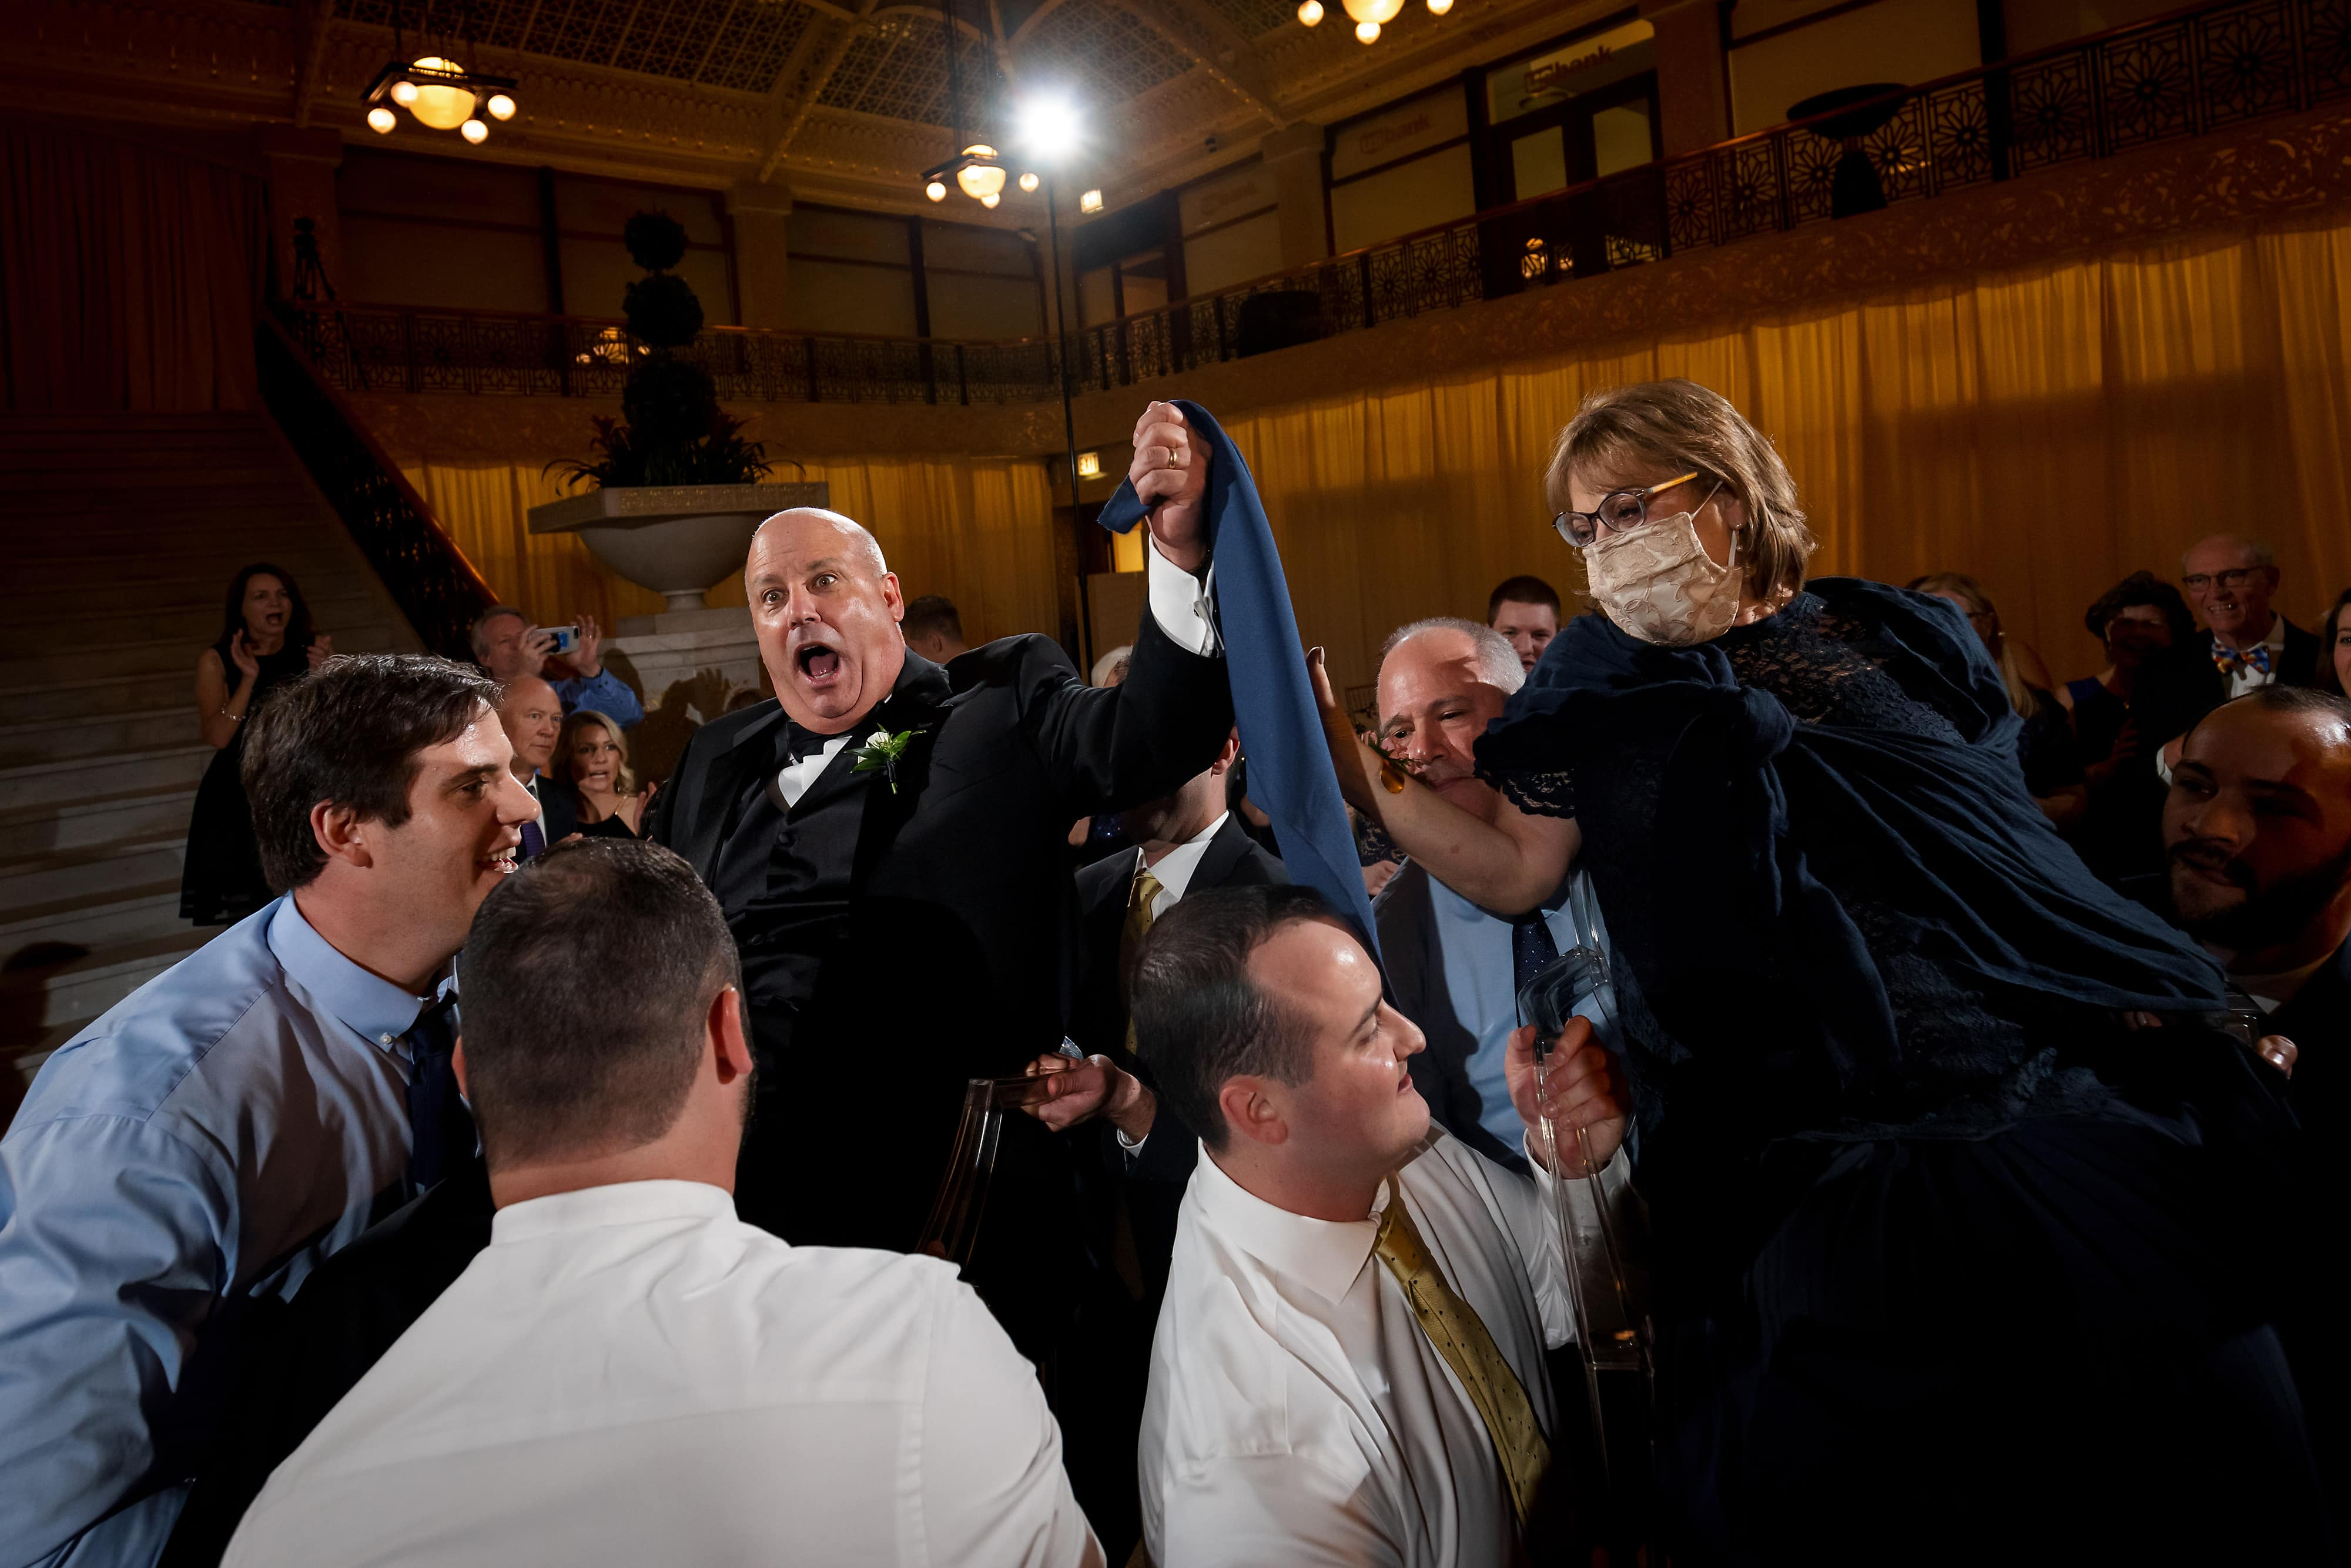 Parents of the groom are lifted in chairs by guests during Hora dance of wedding reception at the Rookery Building in Chicago